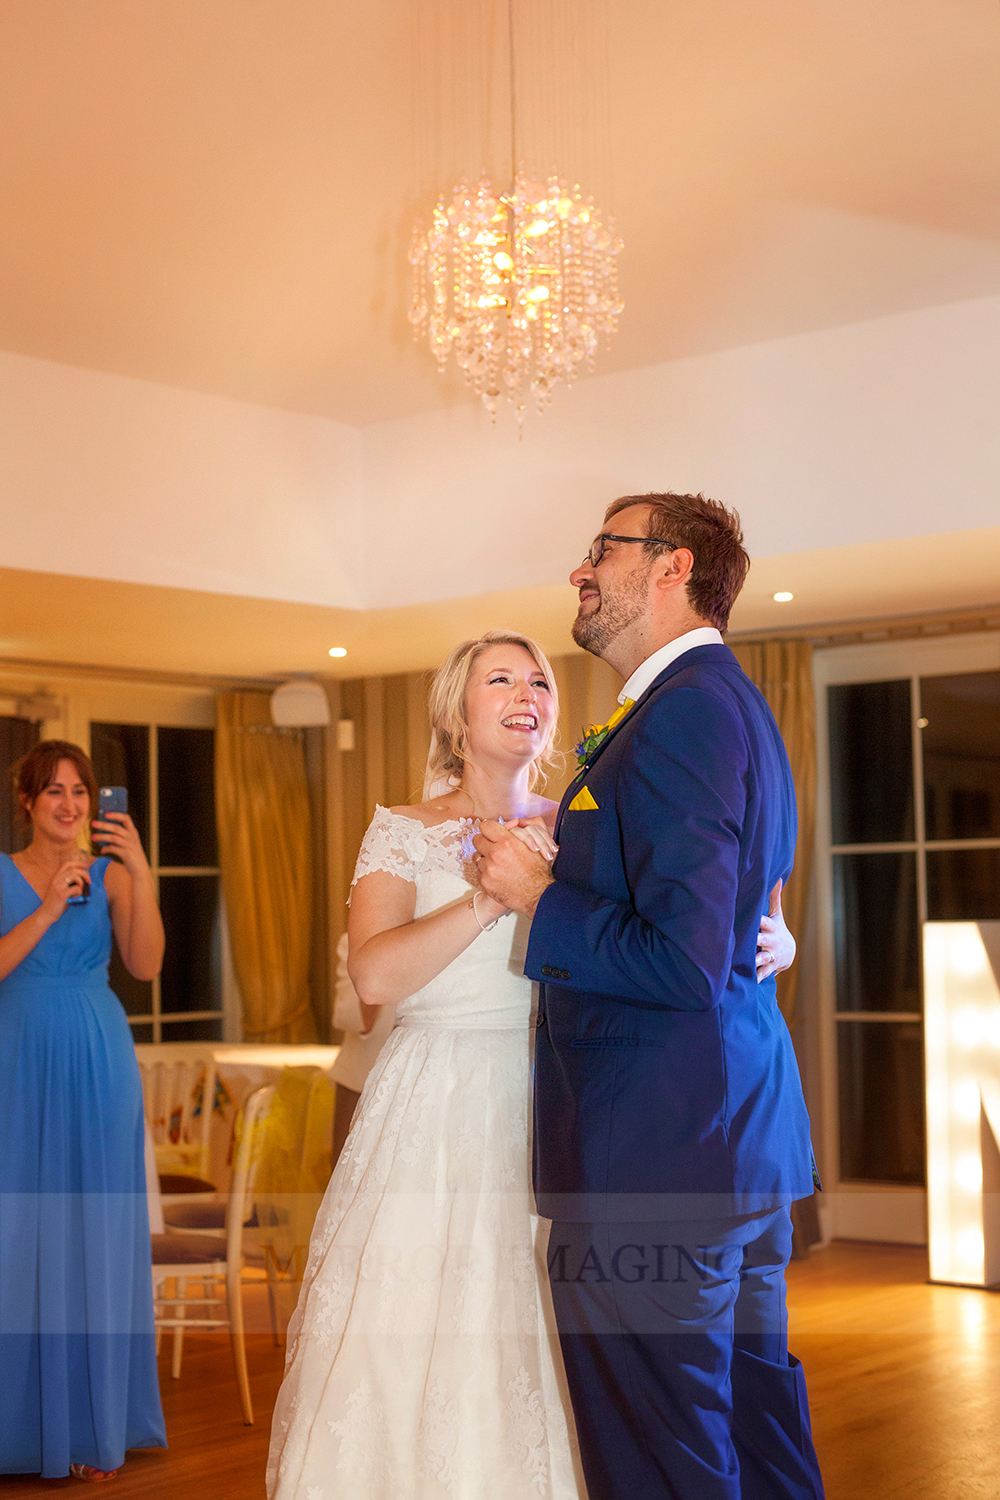 notts wedding photographer 62.jpg